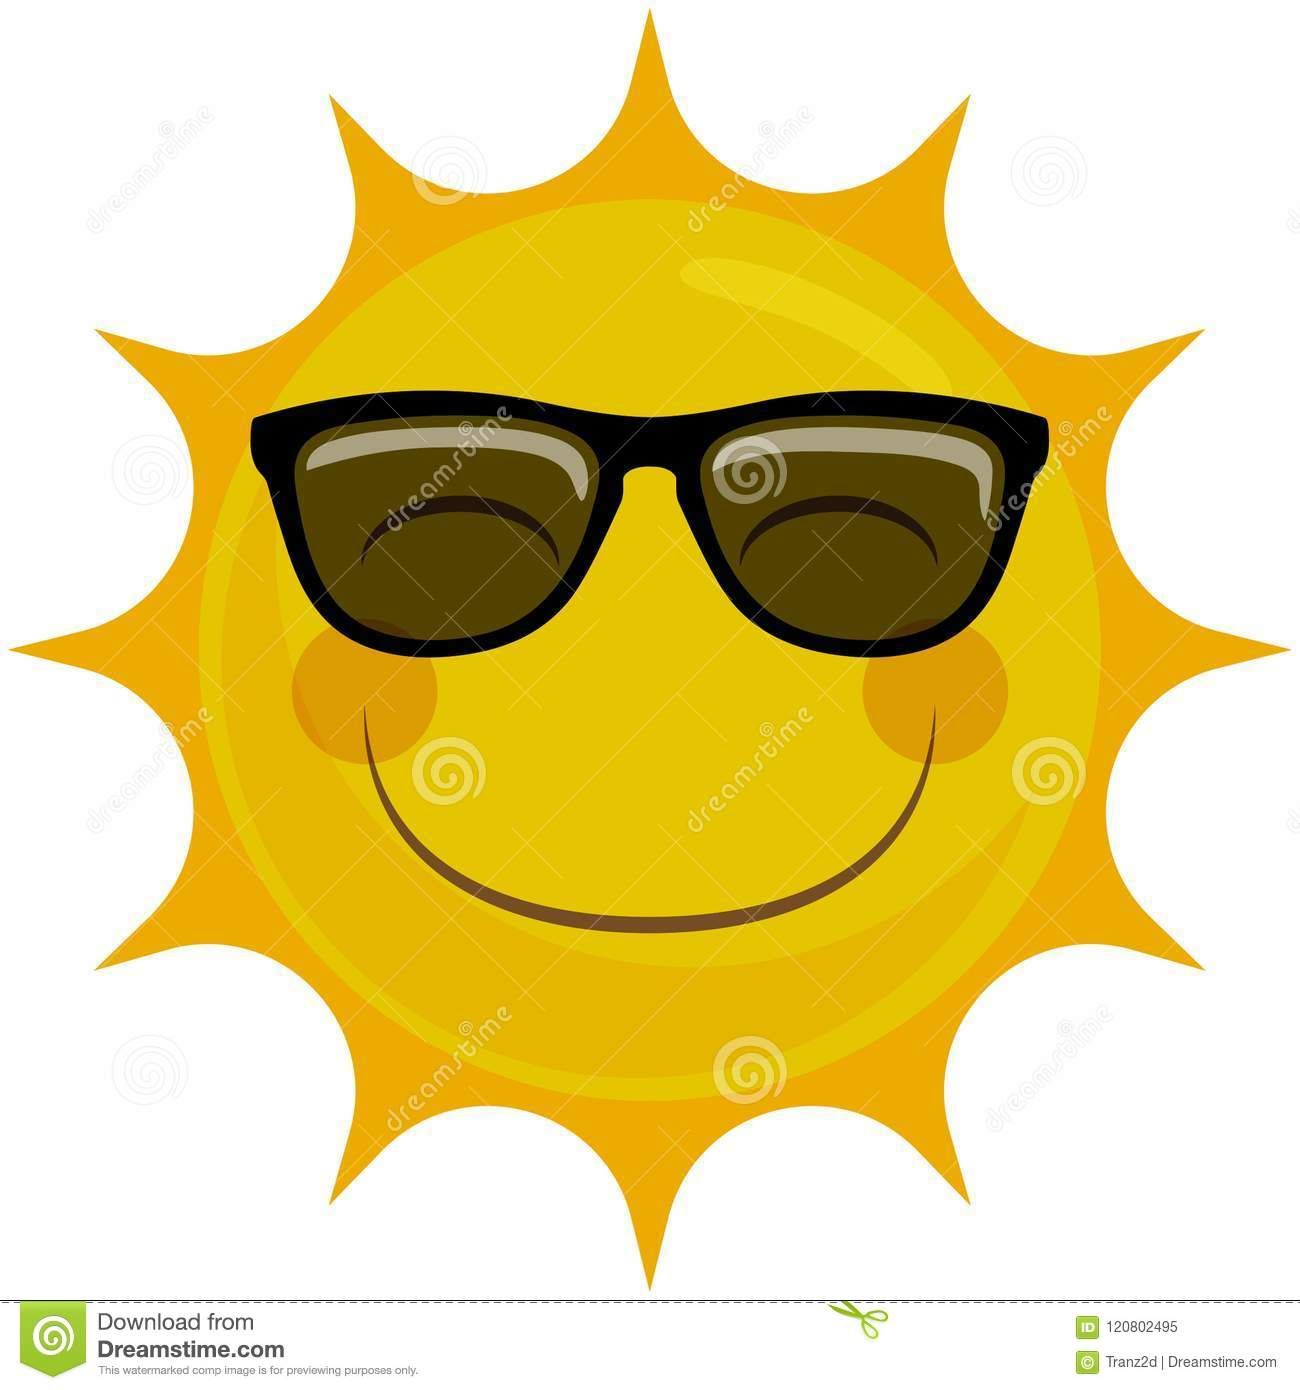 Happy Smiling Sun Character With Sunglasses Illustration About Glad Representing Cute Happiness Shining Heat Fac Cute Sun Drawing Sunglasses Smiling Sun